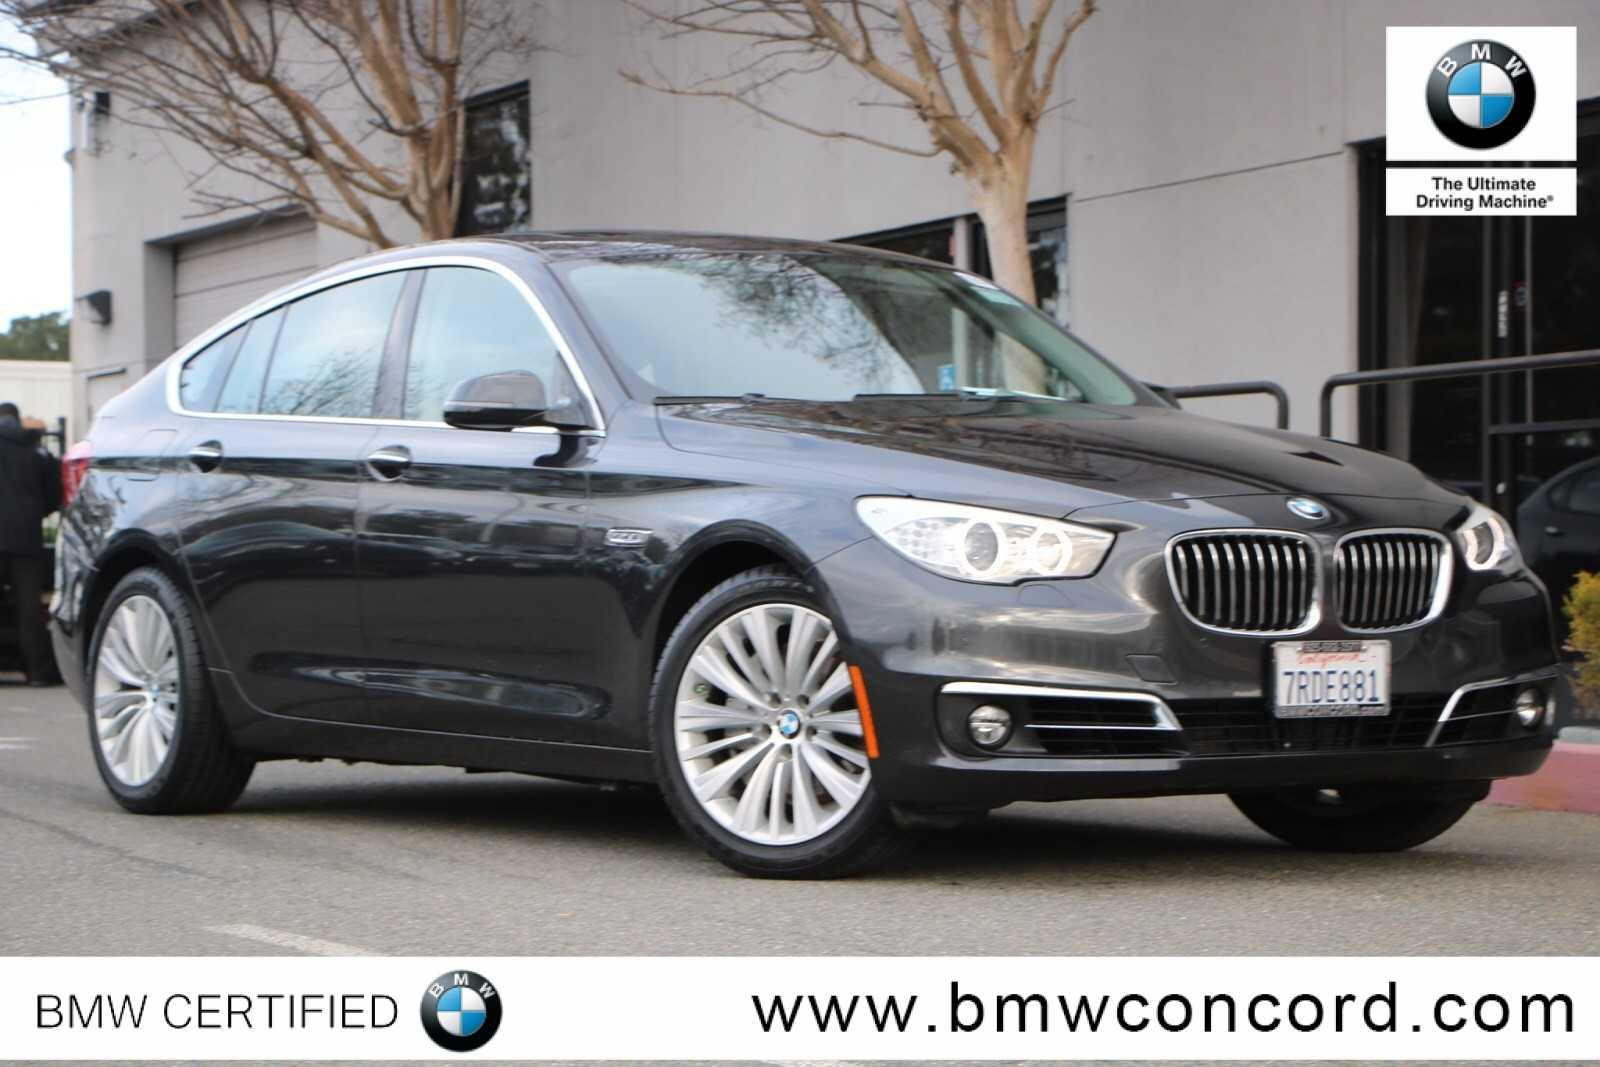 Bmw Certified Pre Owned >> Certified Pre Owned 2015 Bmw 5 Series Gran Turismo 5dr 535i Xdrive Gran Turismo Awd Awd